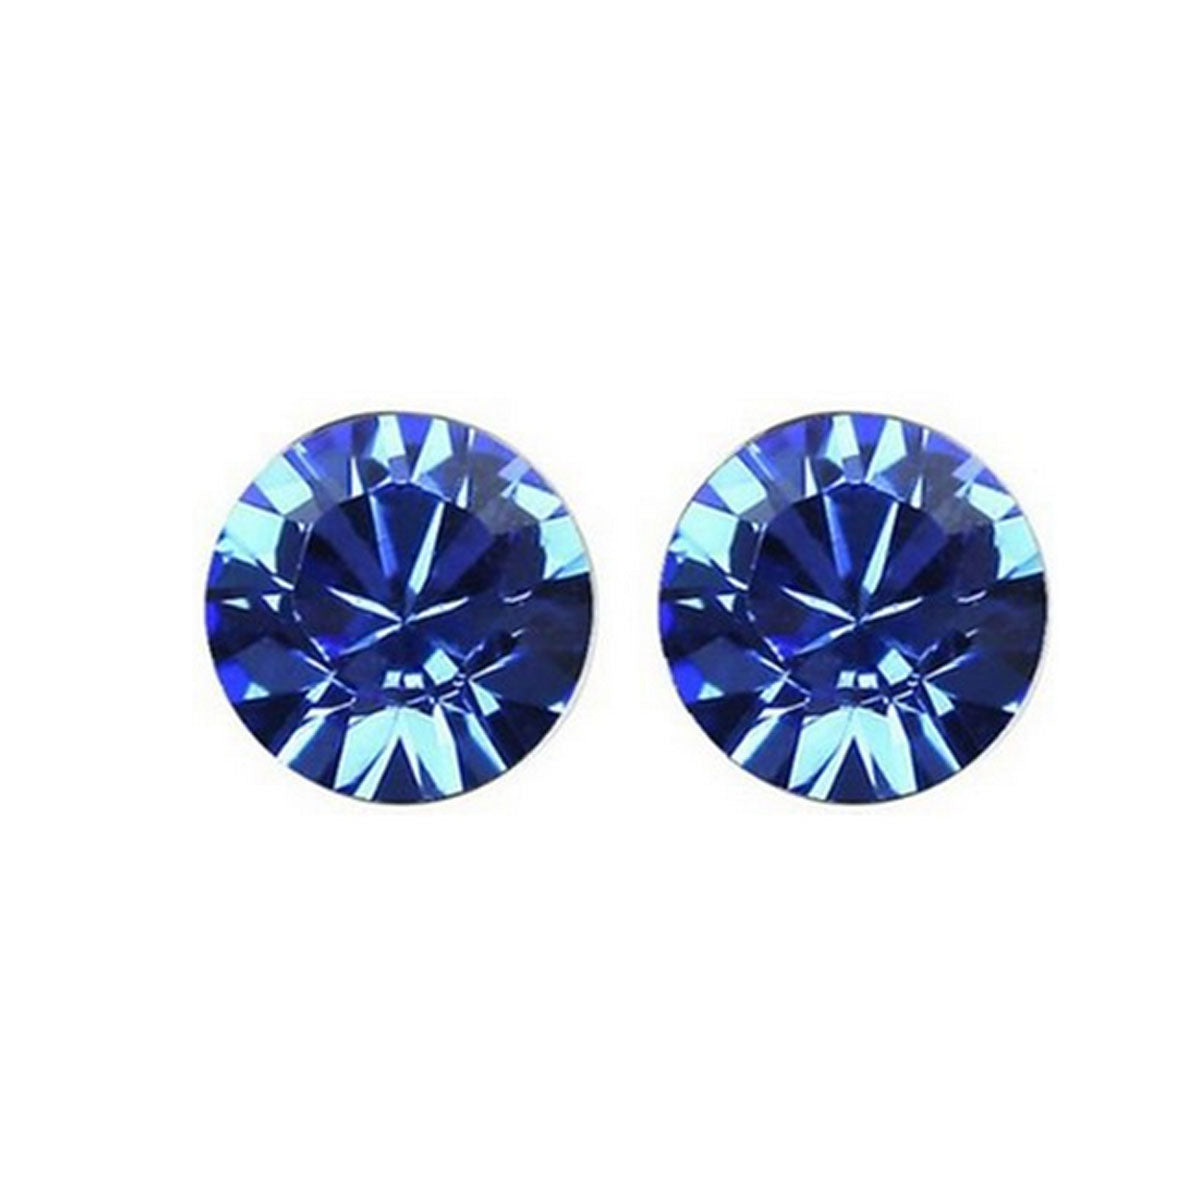 Swarovski Elements Crystal Stud Earrings